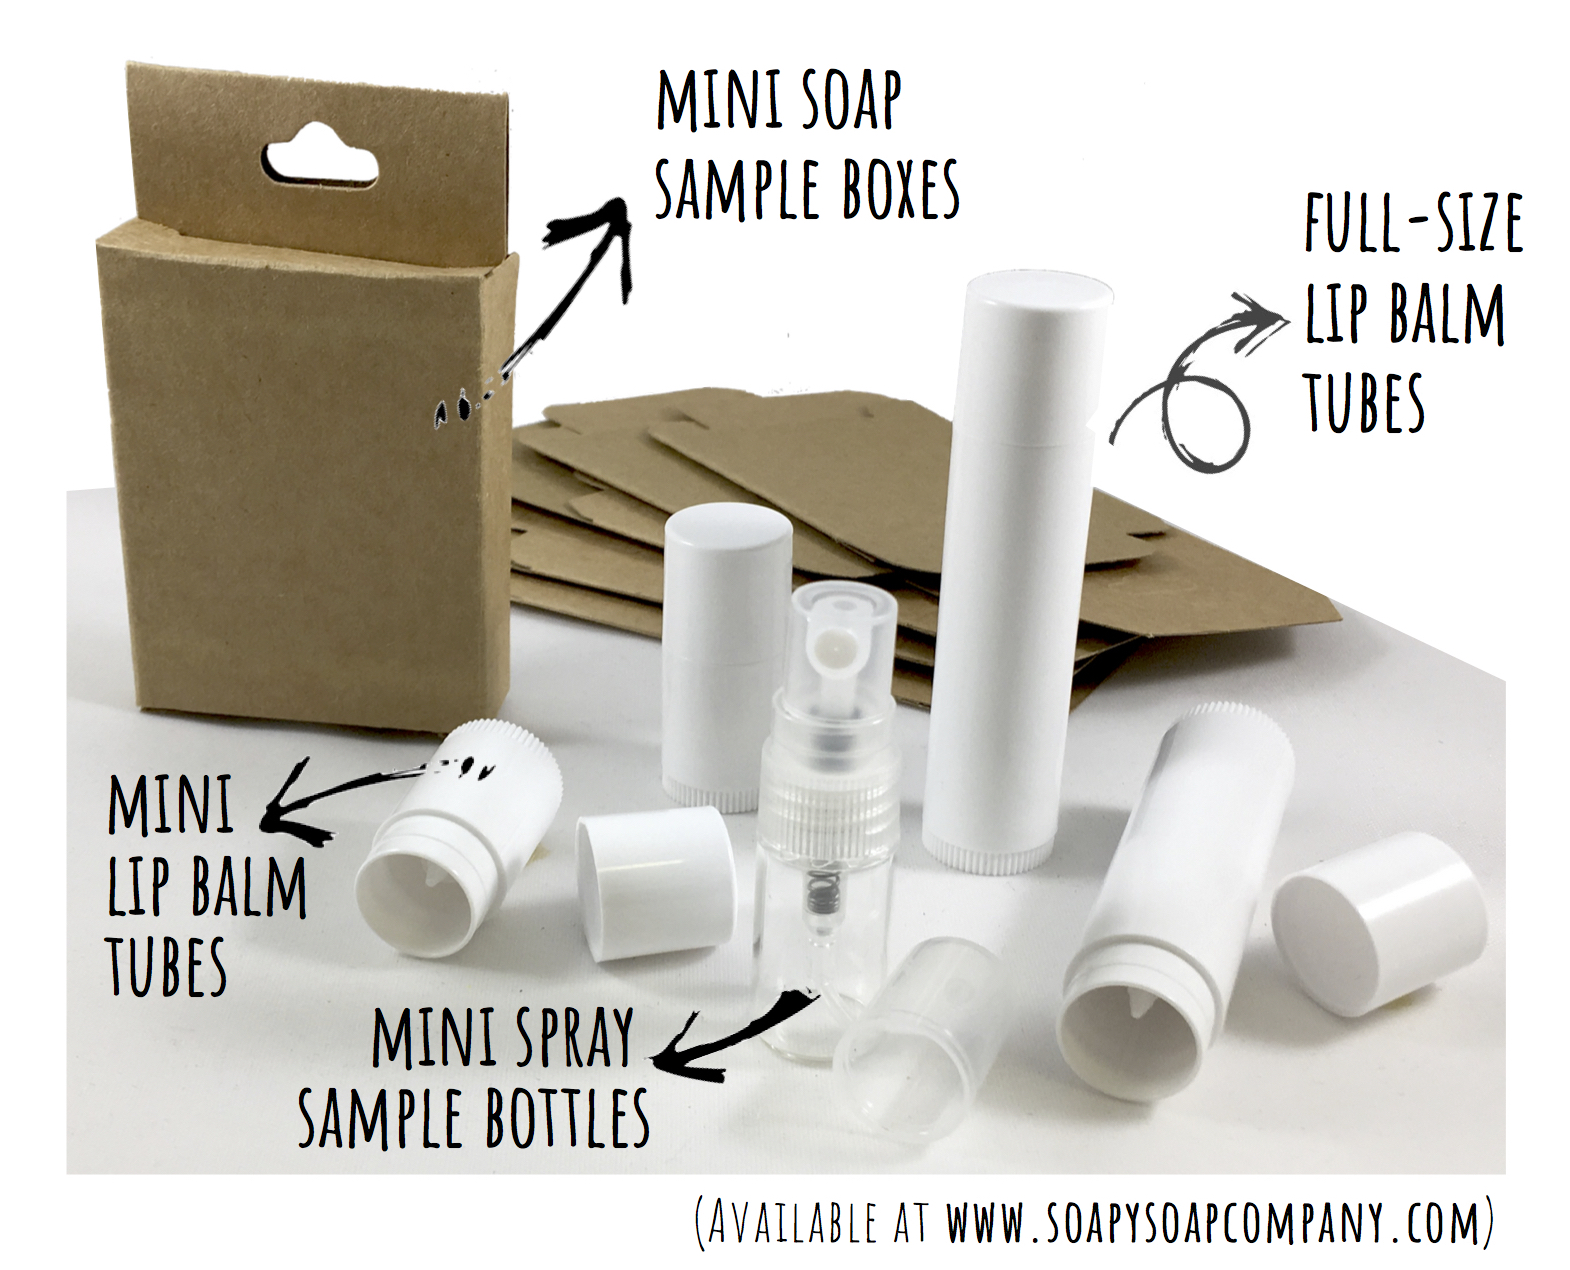 Mini Soap Sample Boxes